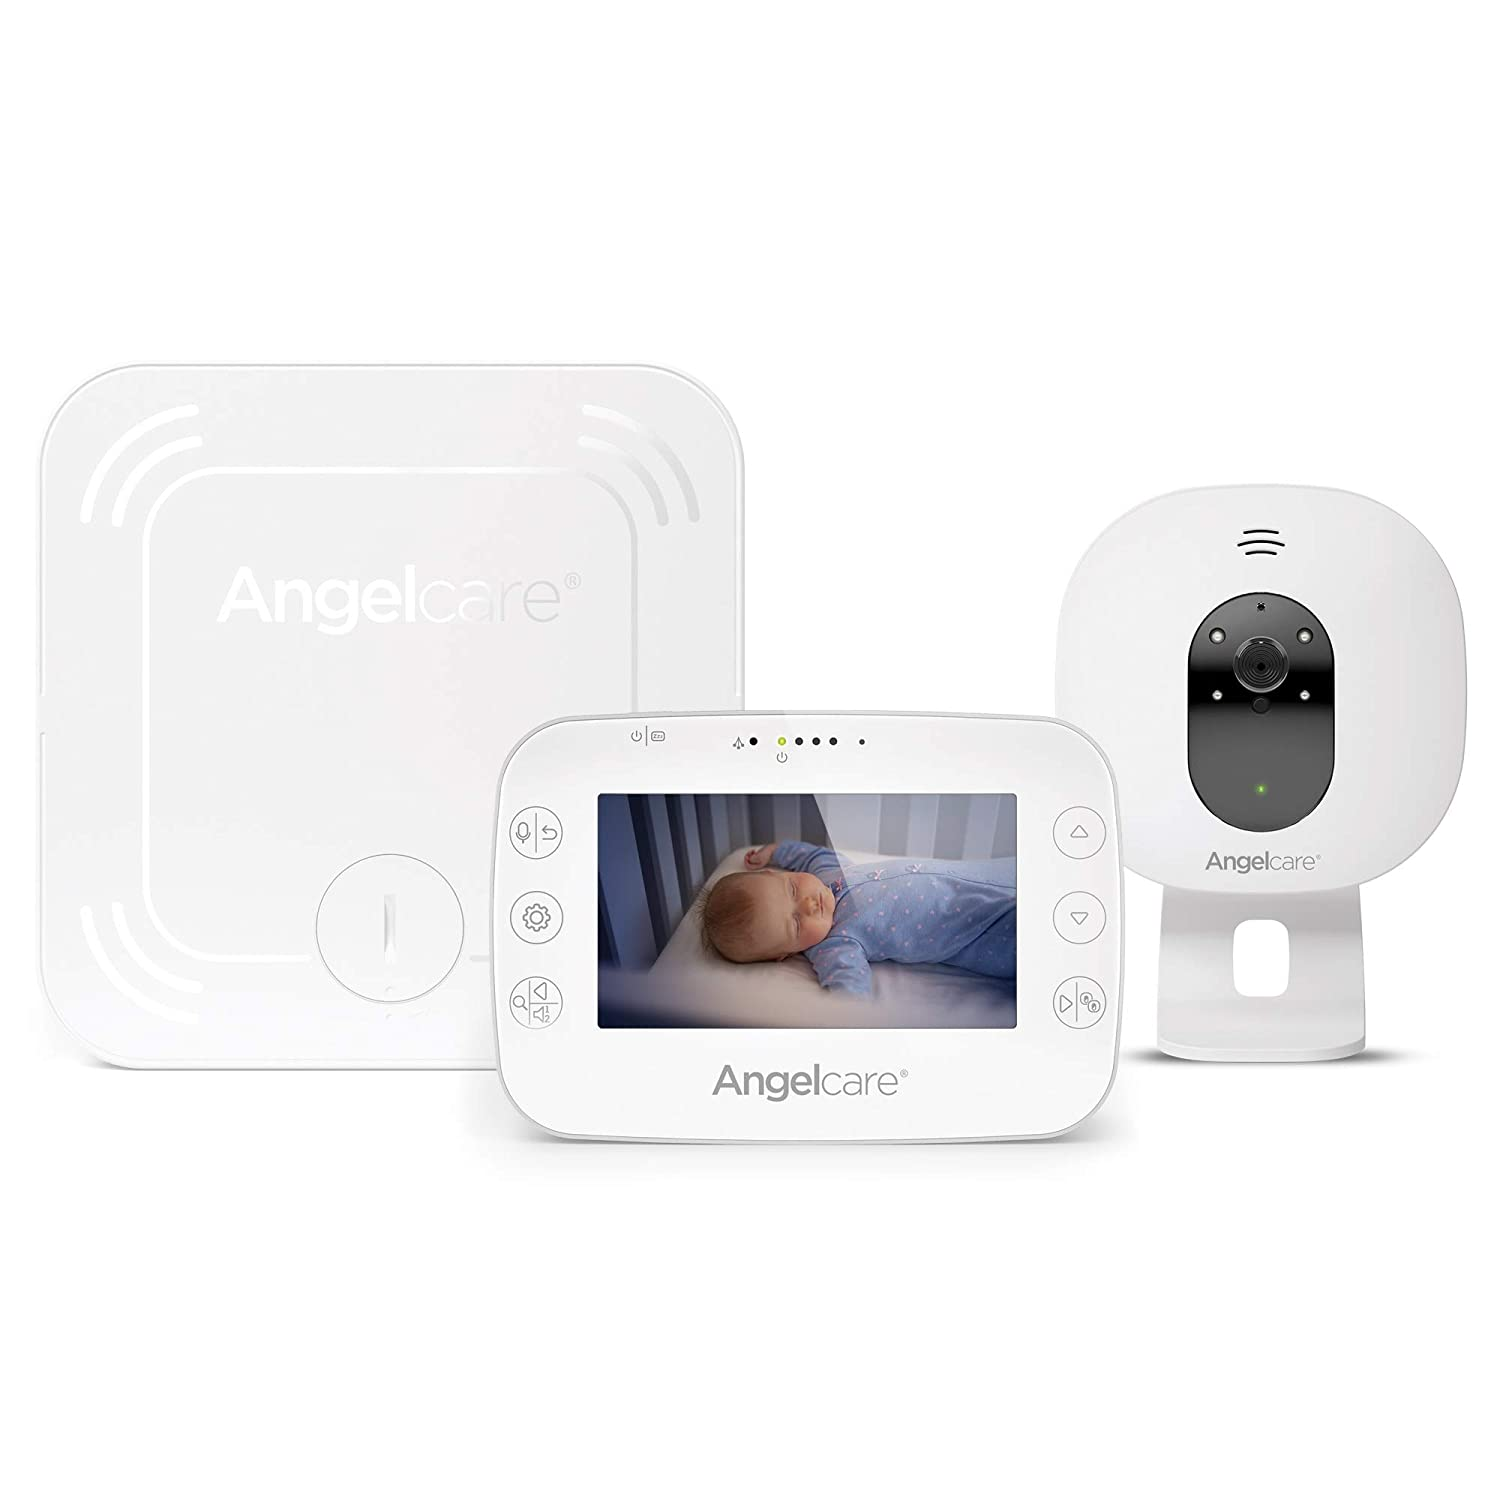 Angelcare 3-in-1 AC327 Baby Monitor